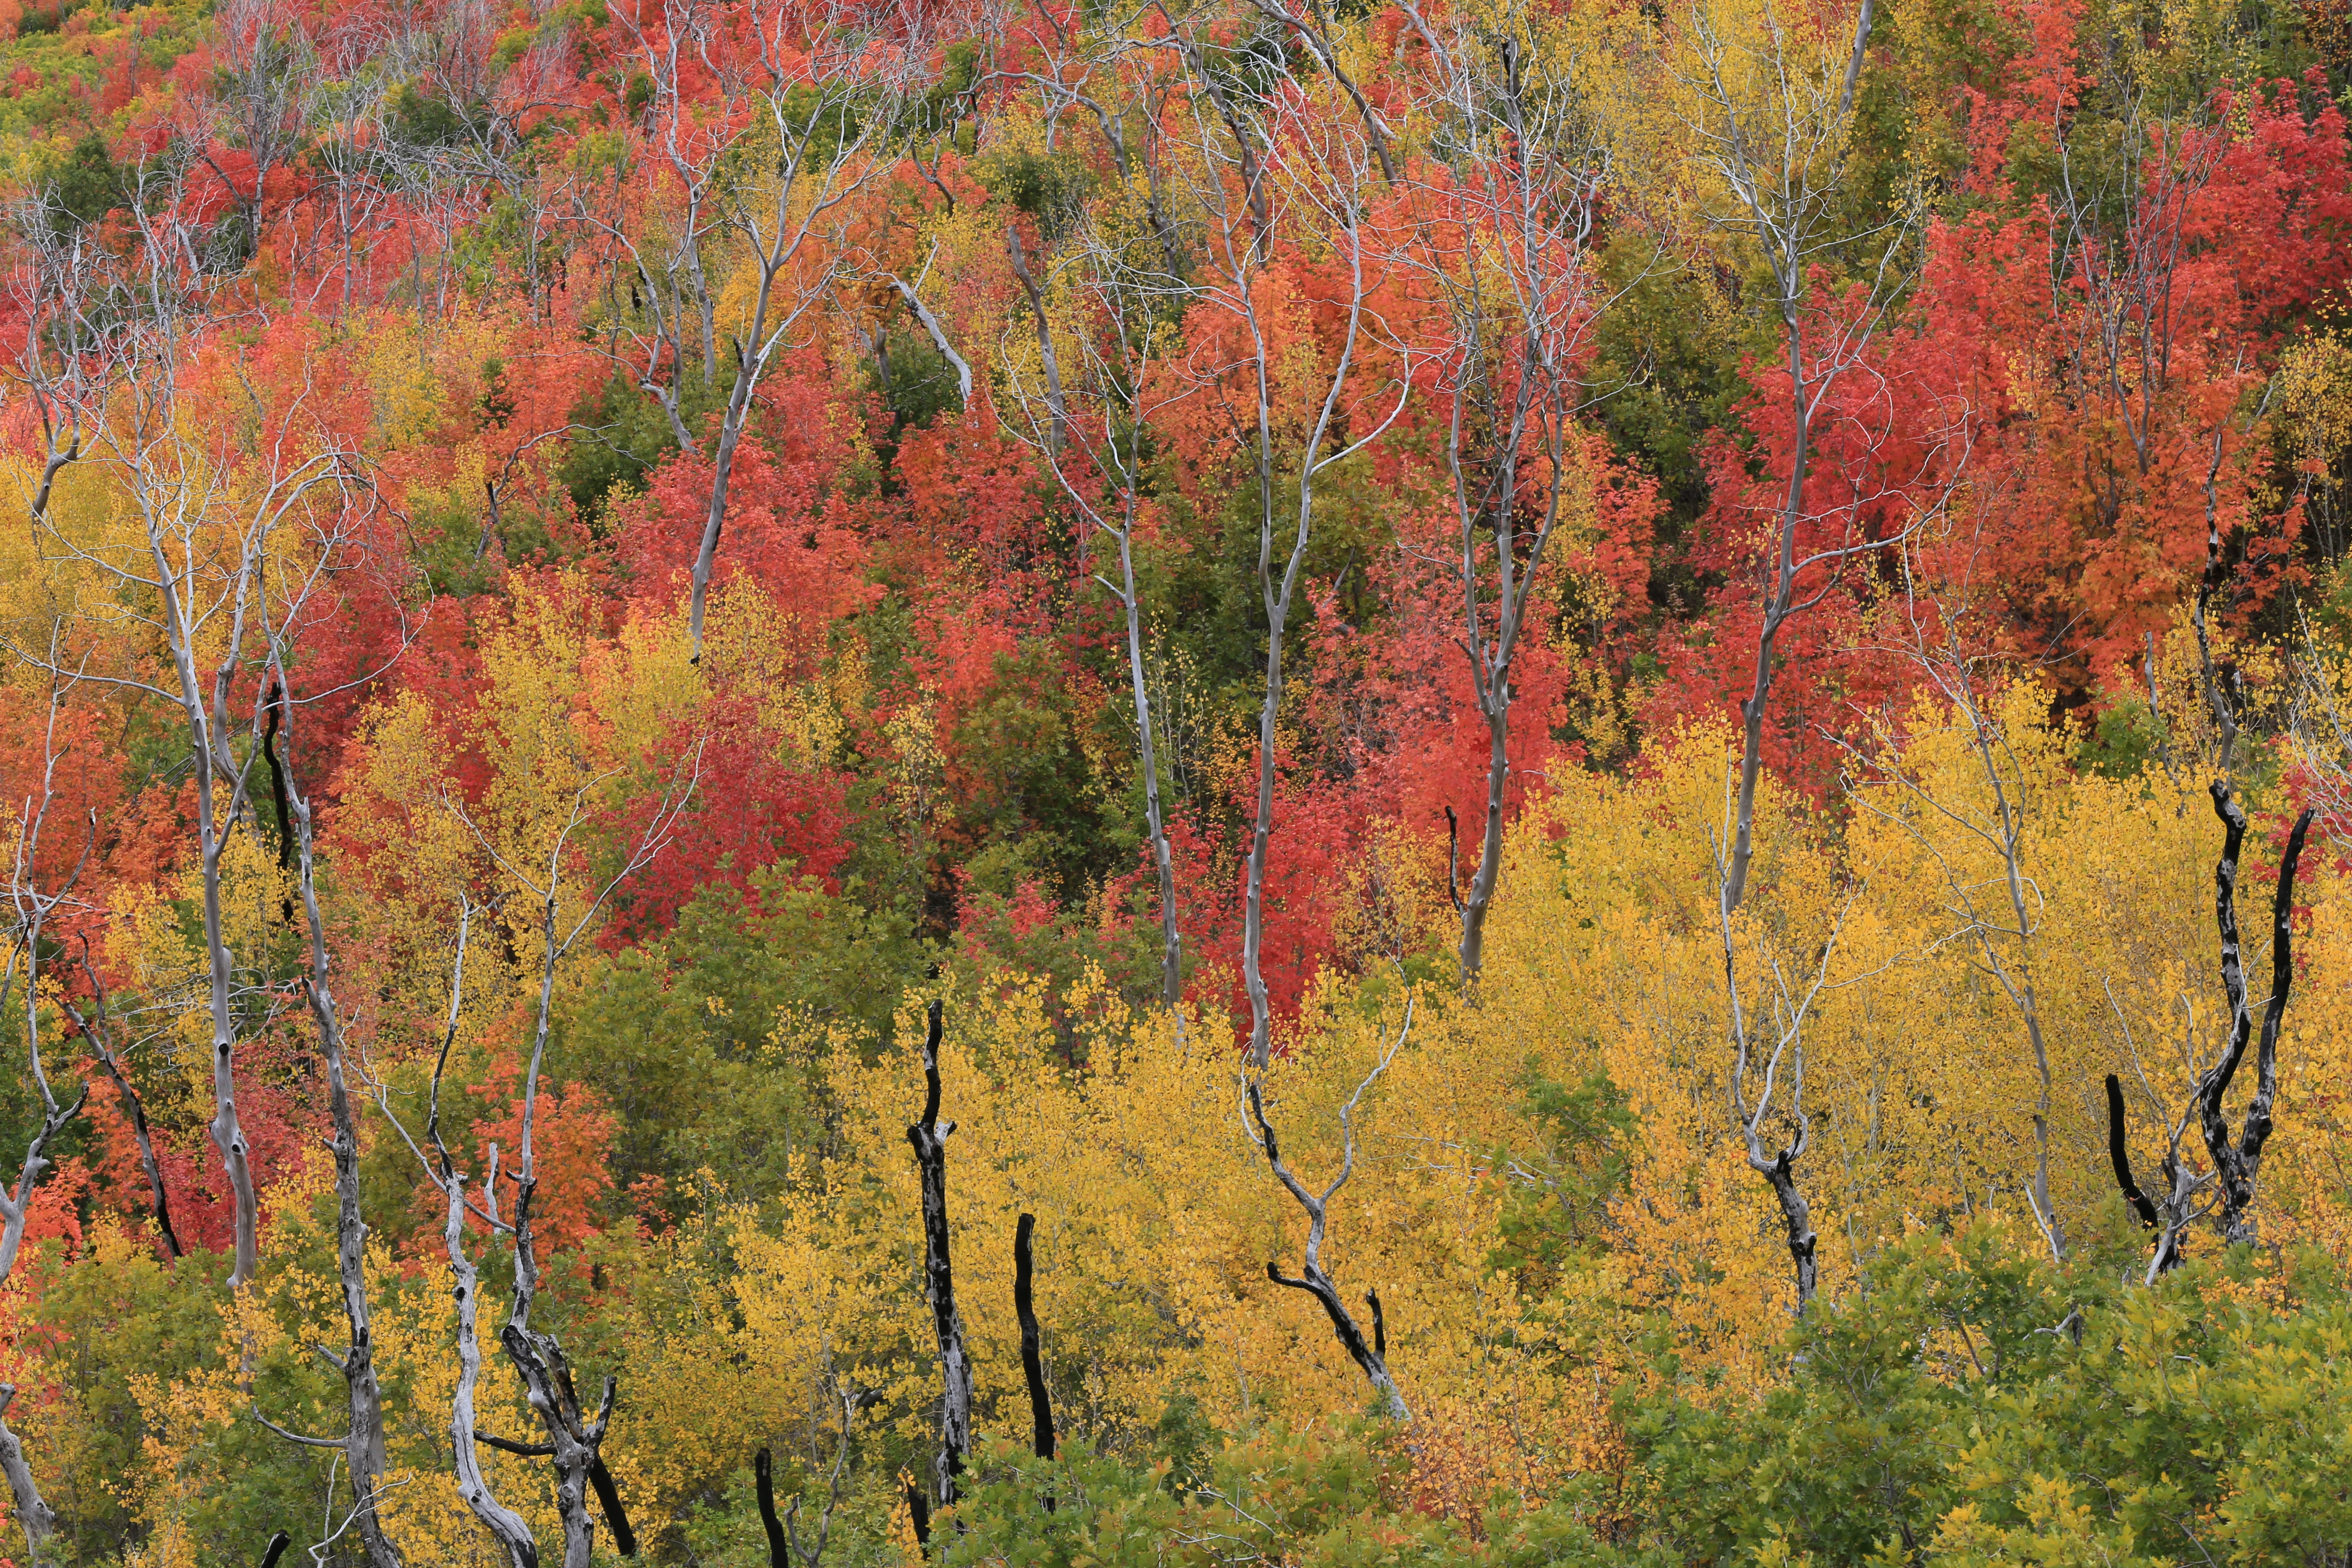 green, brown, and orange leafed trees